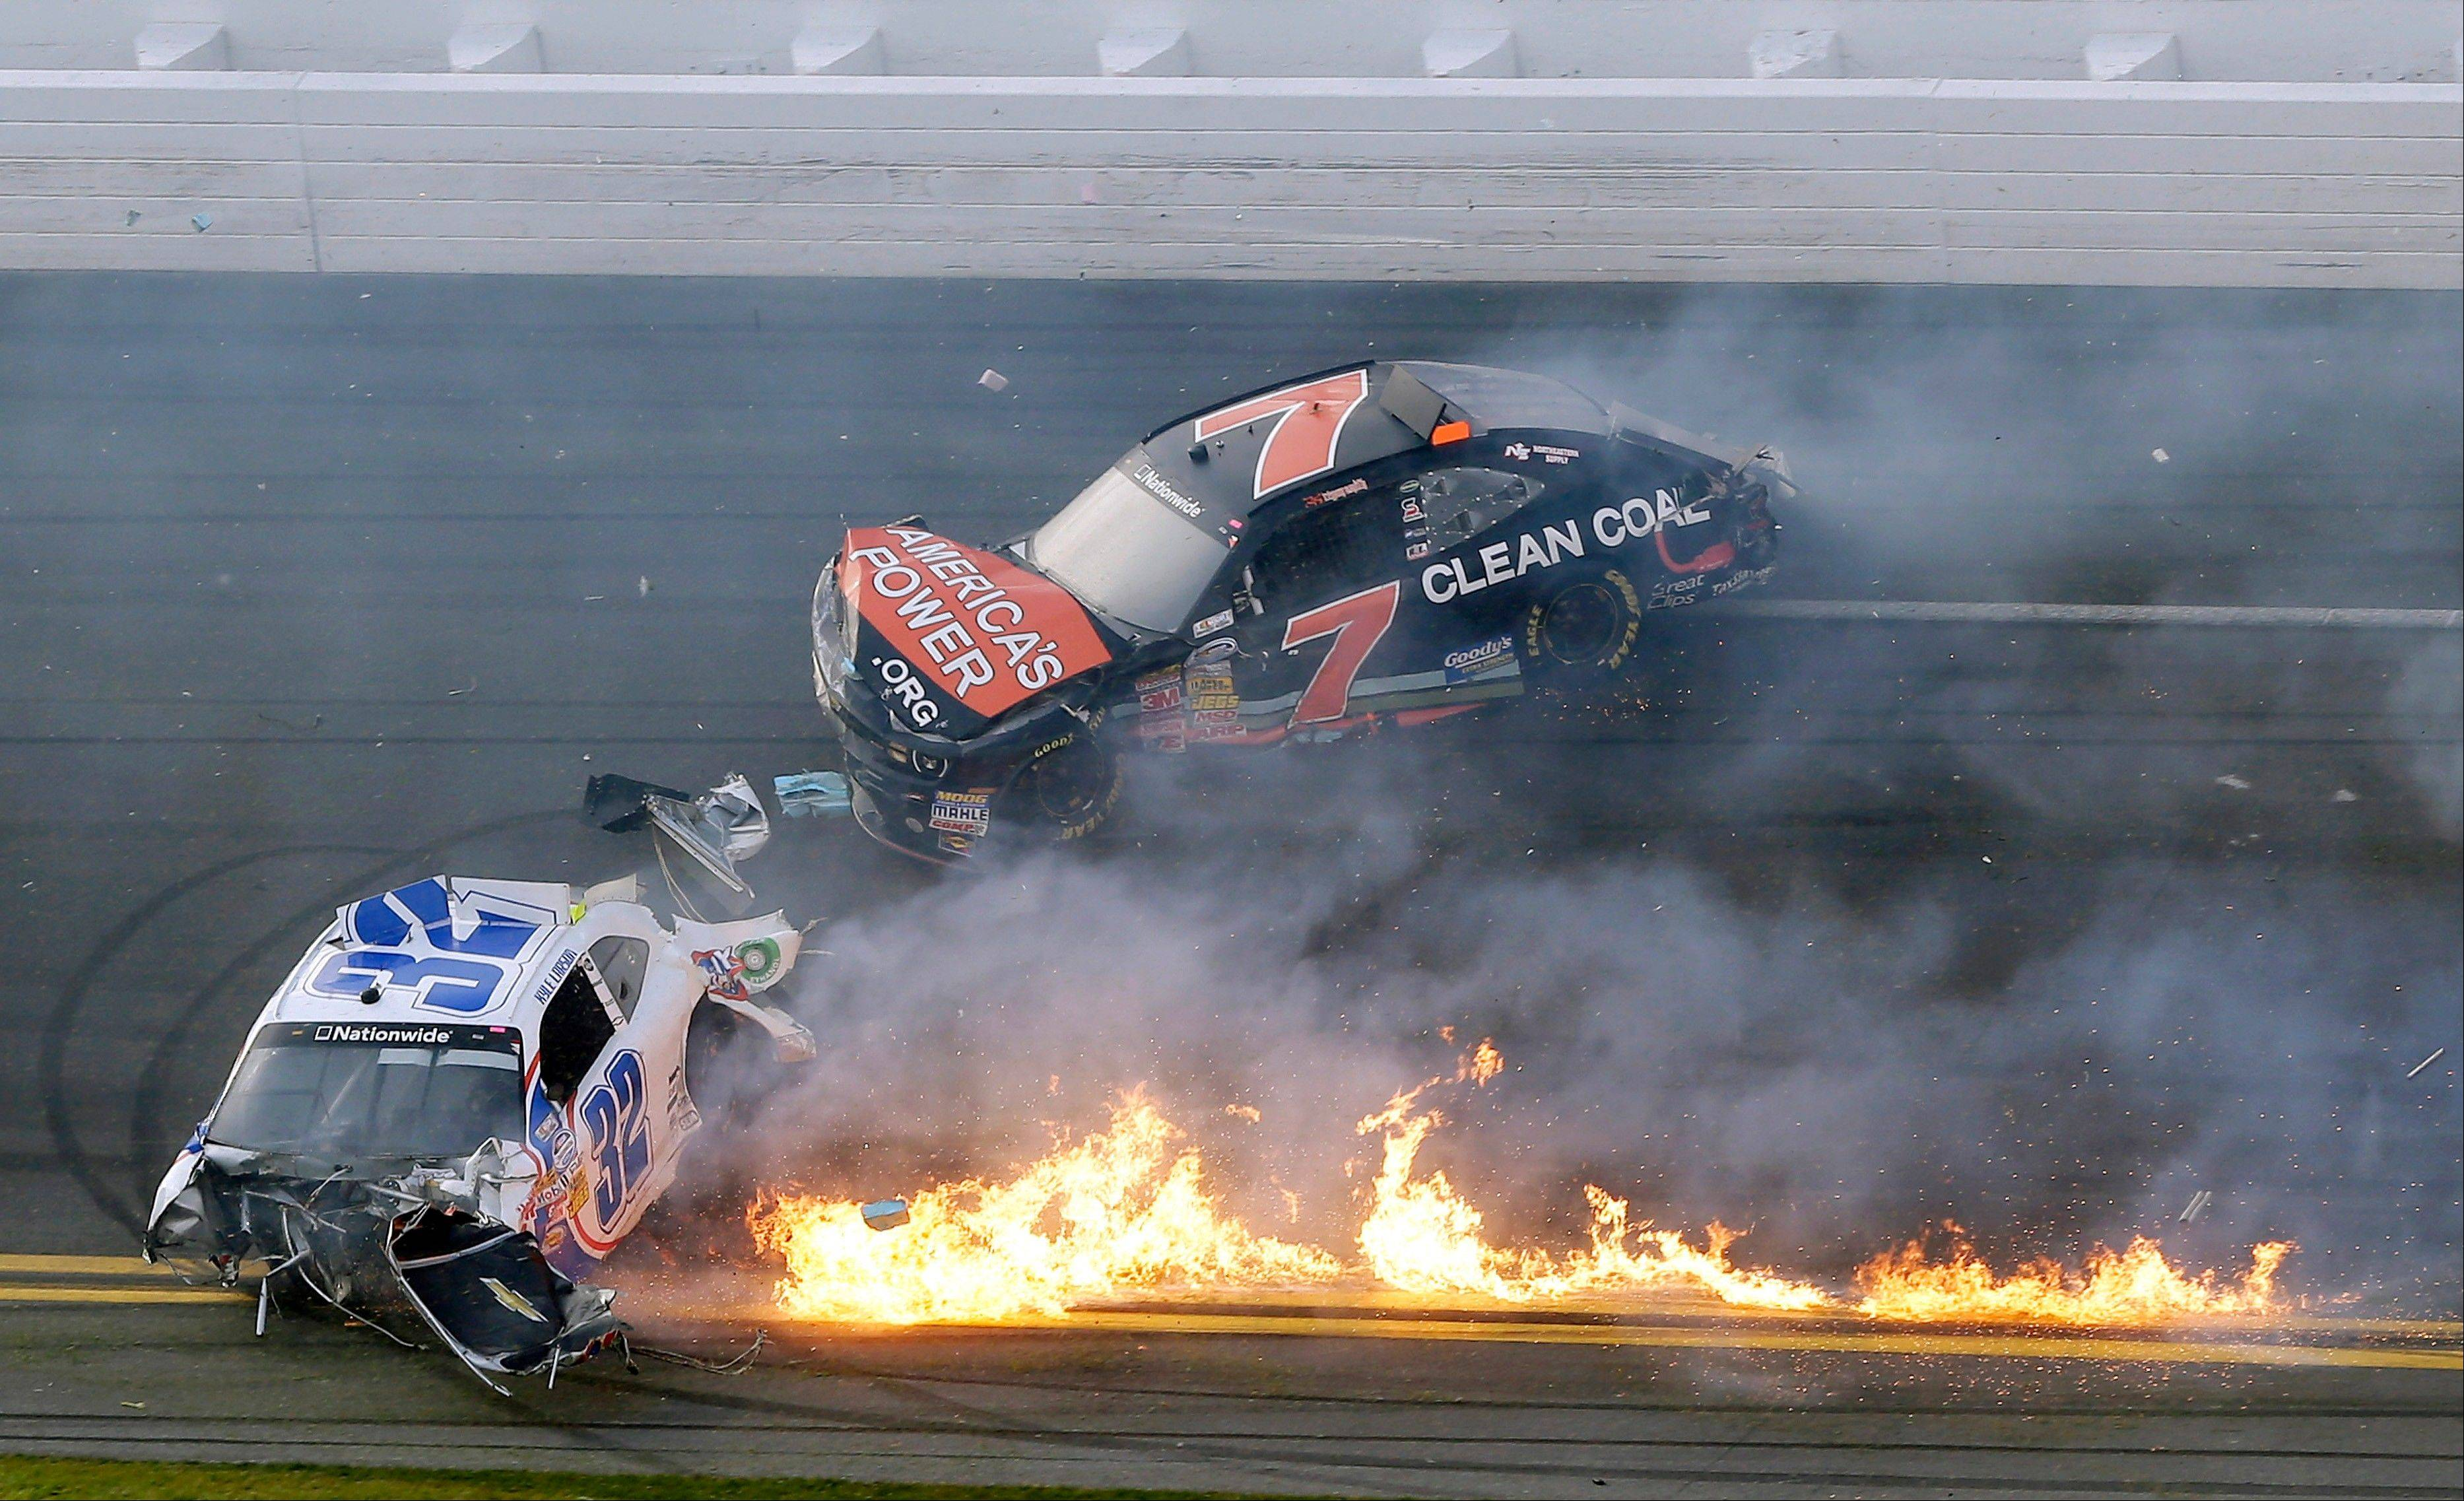 Kyle Larson's car is on fire as he slides down the track with Regan Smith after being involved in a crash at the conclusion of the NASCAR Nationwide Series auto race Saturday.